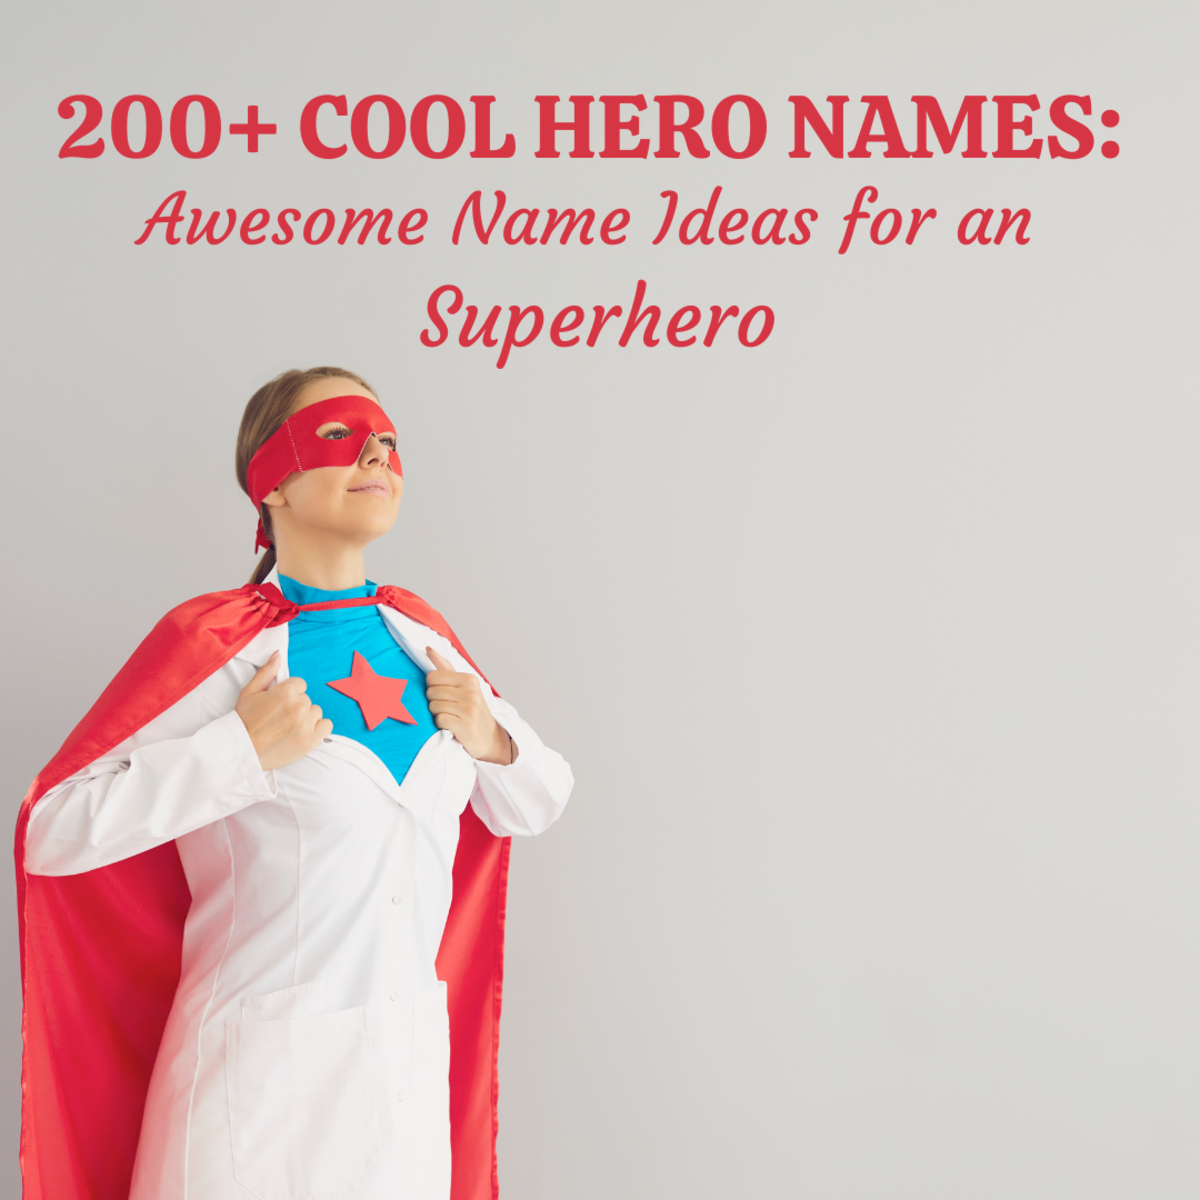 200+ Cool Hero Names for Someone Who Keeps the Bad Guys in Line